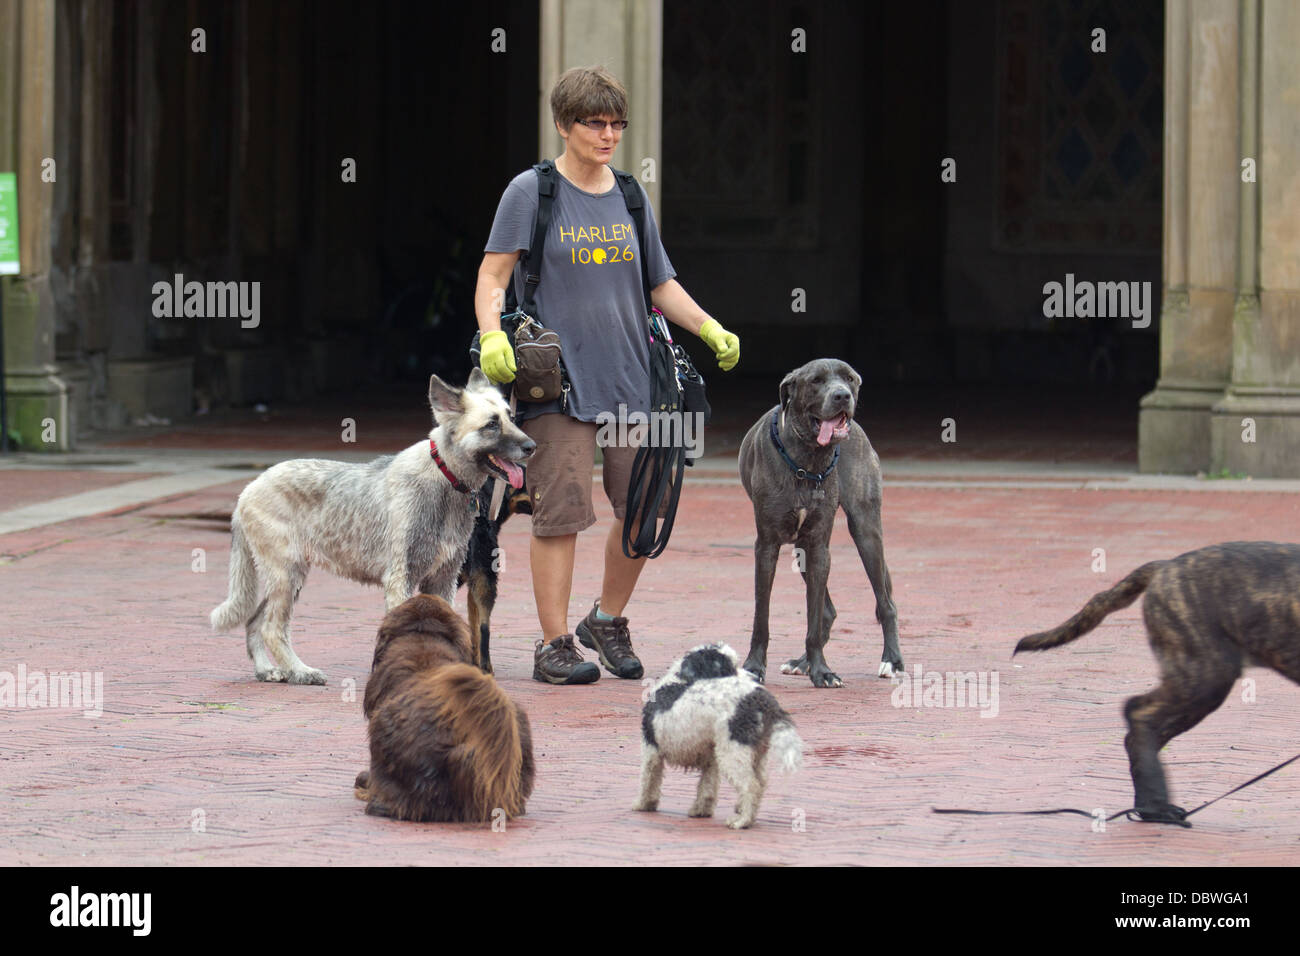 Woman with dogs in park Stock Photo